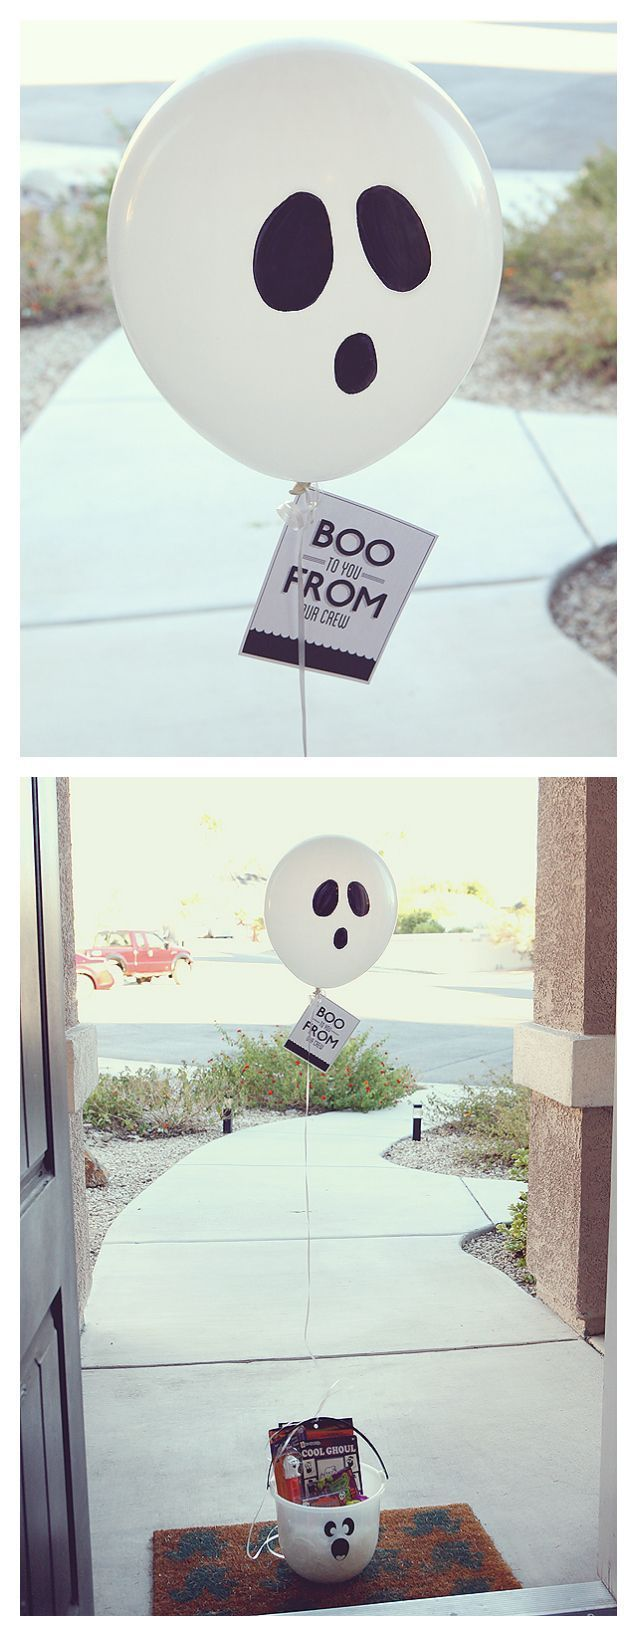 Boo to You – Draw a simple ghost face on the ballo…